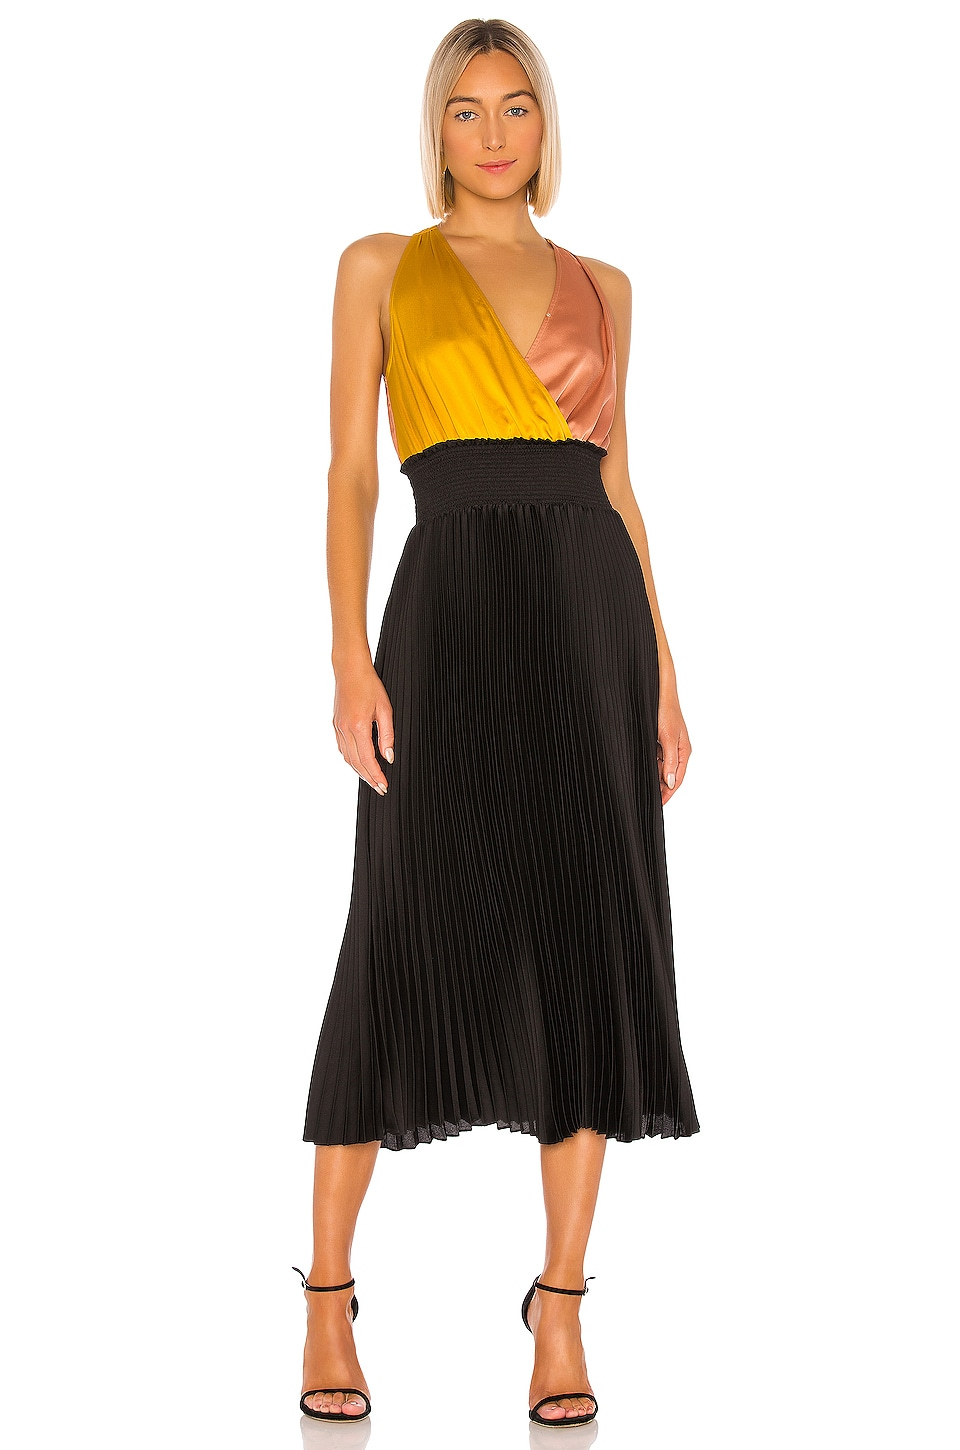 Colorblock Pleated Dress             1. STATE                                                                                                                                         Sale price:                                                                       CA$ 121.60                                                                  Previous price:                                                                       CA$ 201.31 11